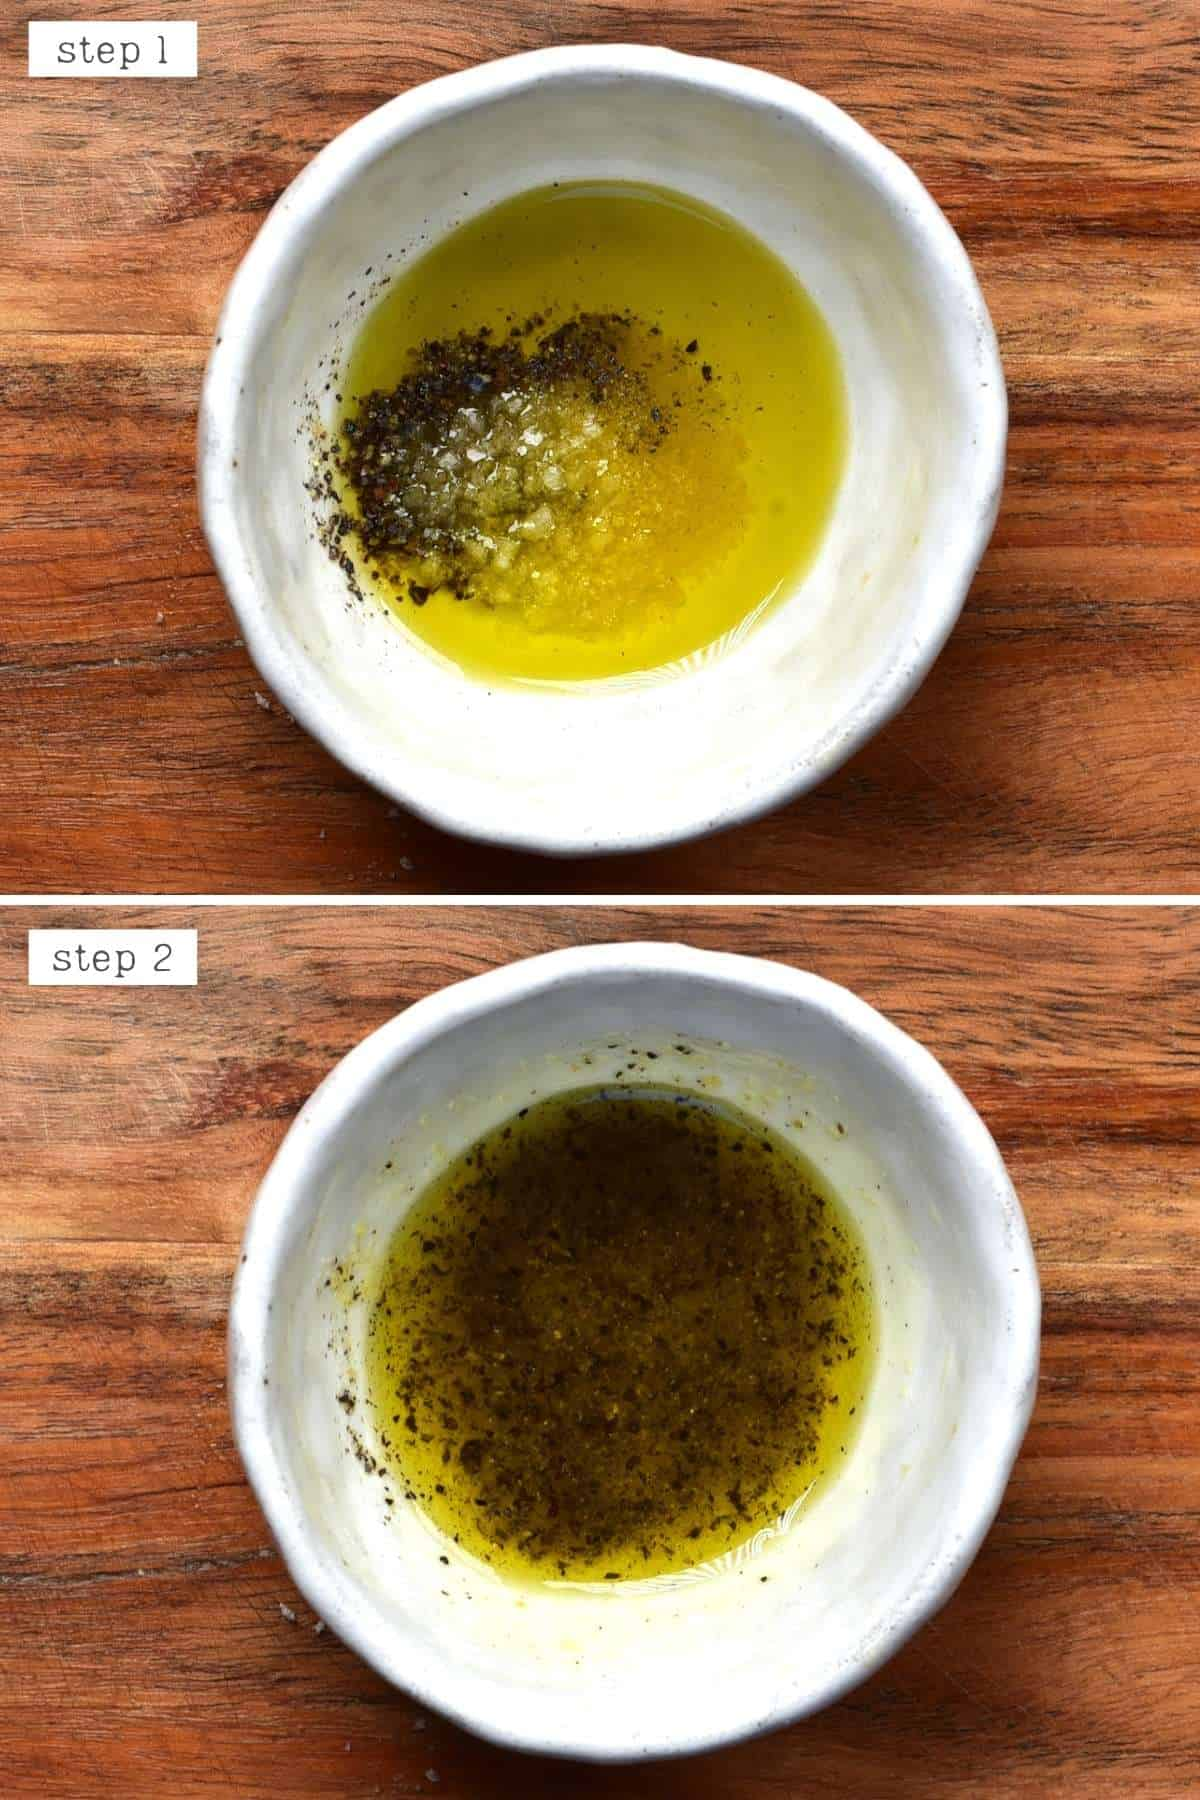 Steps for mixing oil with spices